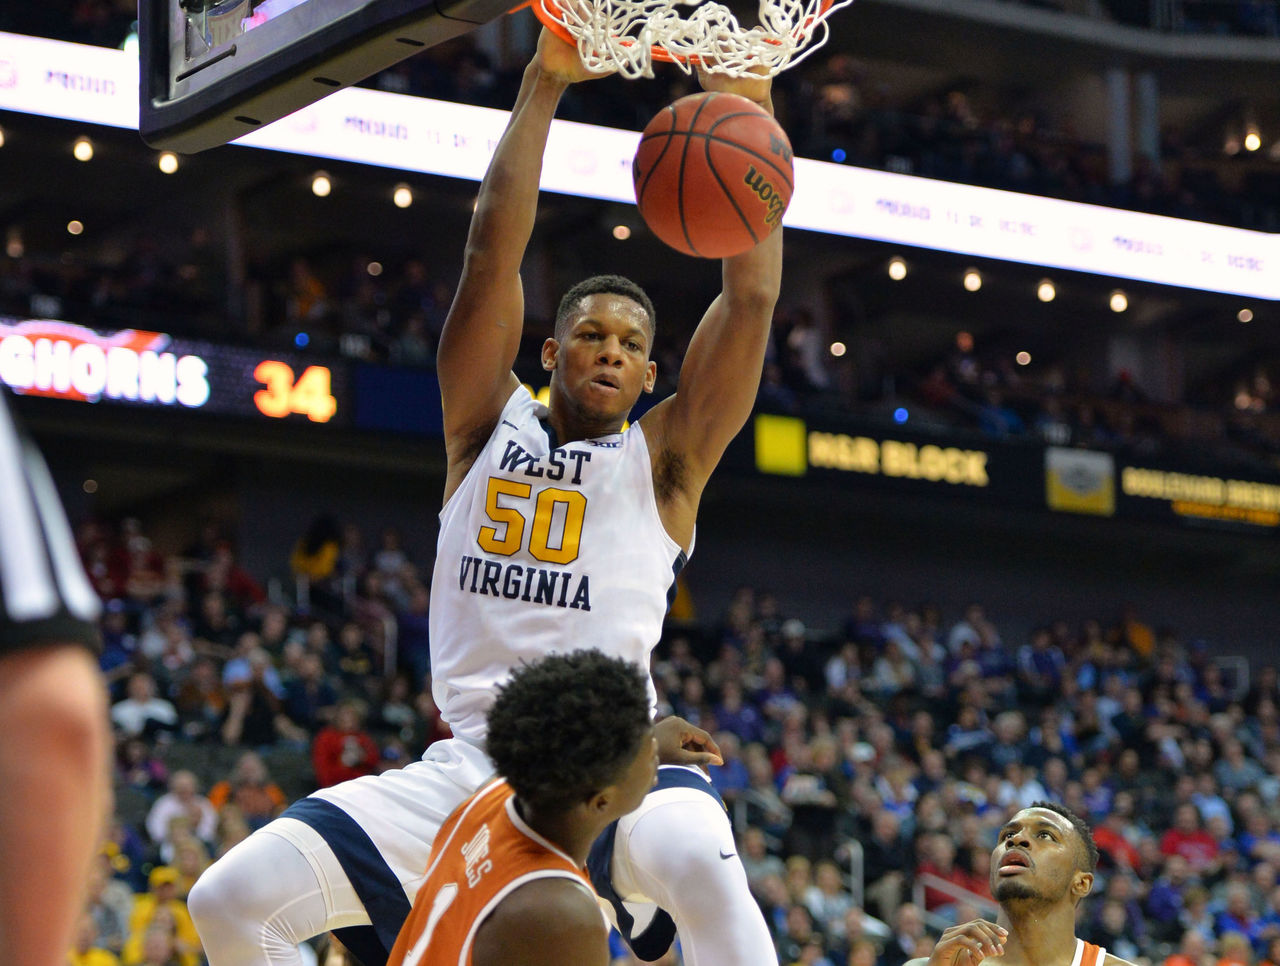 Cropped_2017-03-10t022856z_2077920338_nocid_rtrmadp_3_ncaa-basketball-big-12-championship-west-virginia-vs-texas